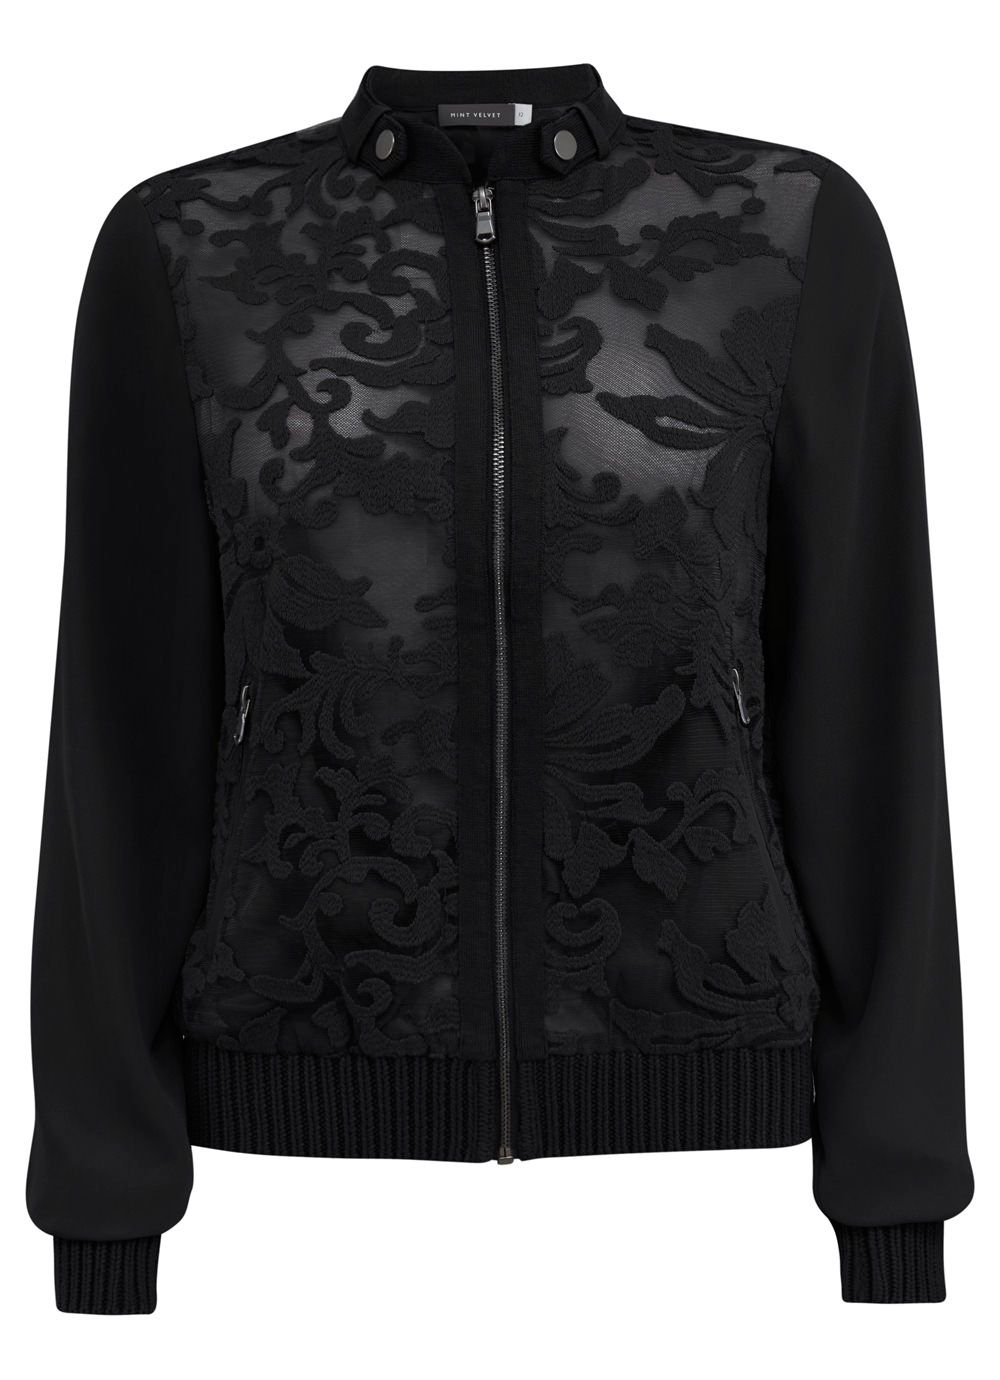 Black Lace Bomber